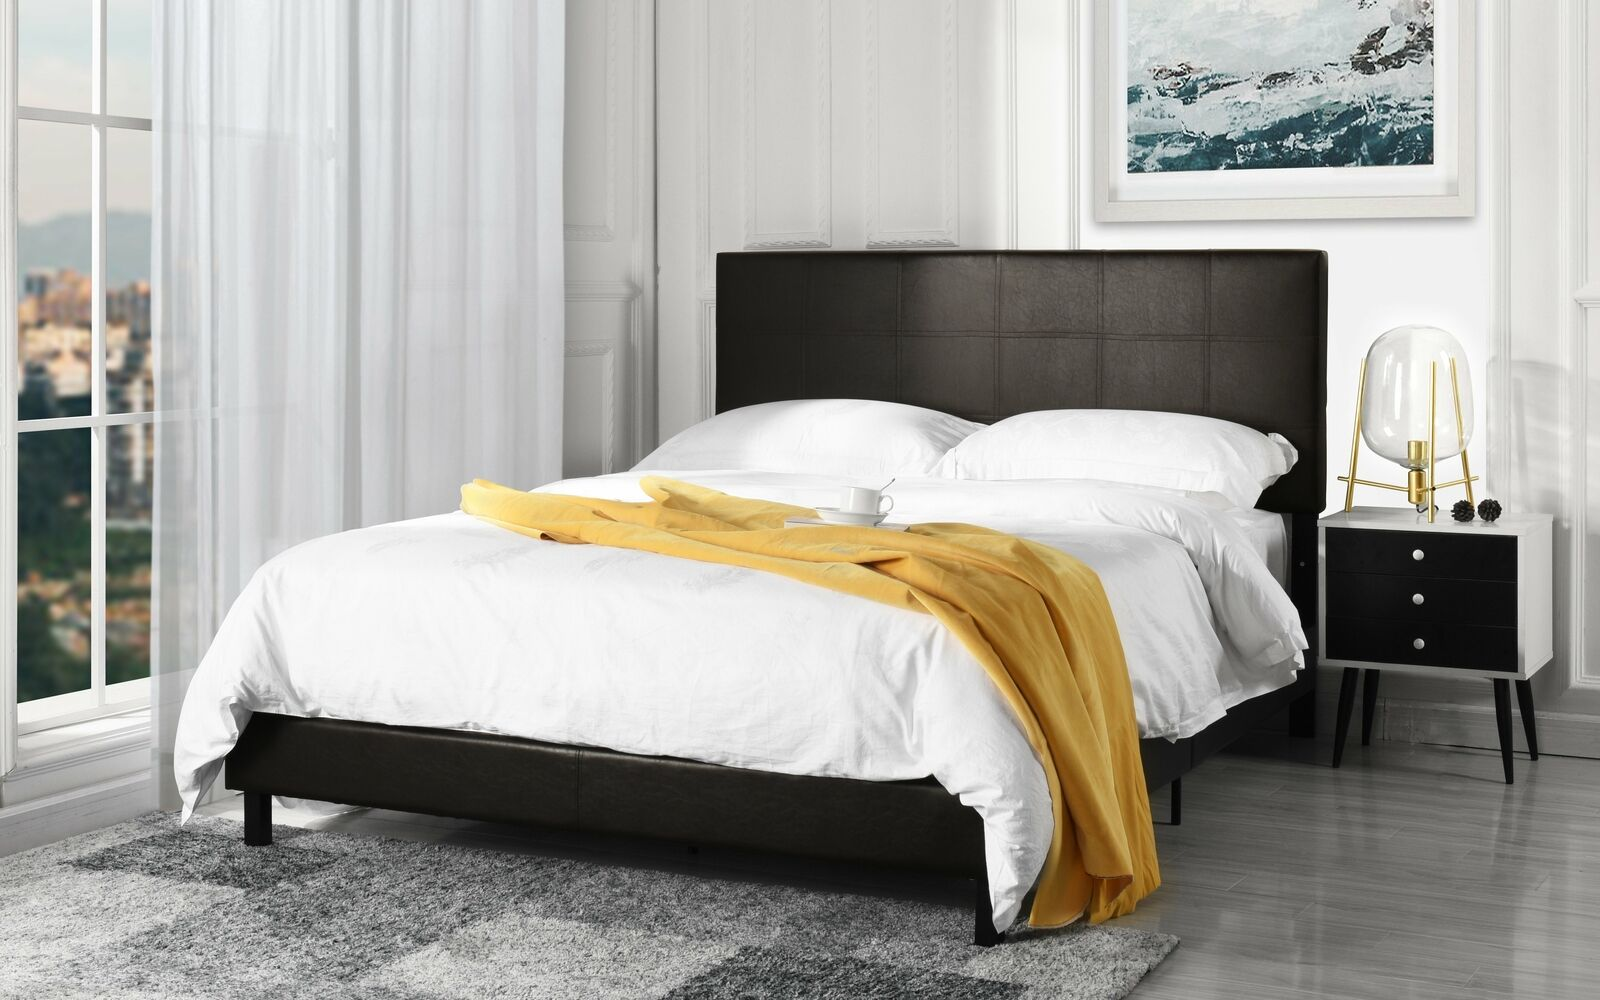 Faux Leather Full Bed Head Board Modern Decor Tufted Height Adjustable Black For Sale Online Ebay